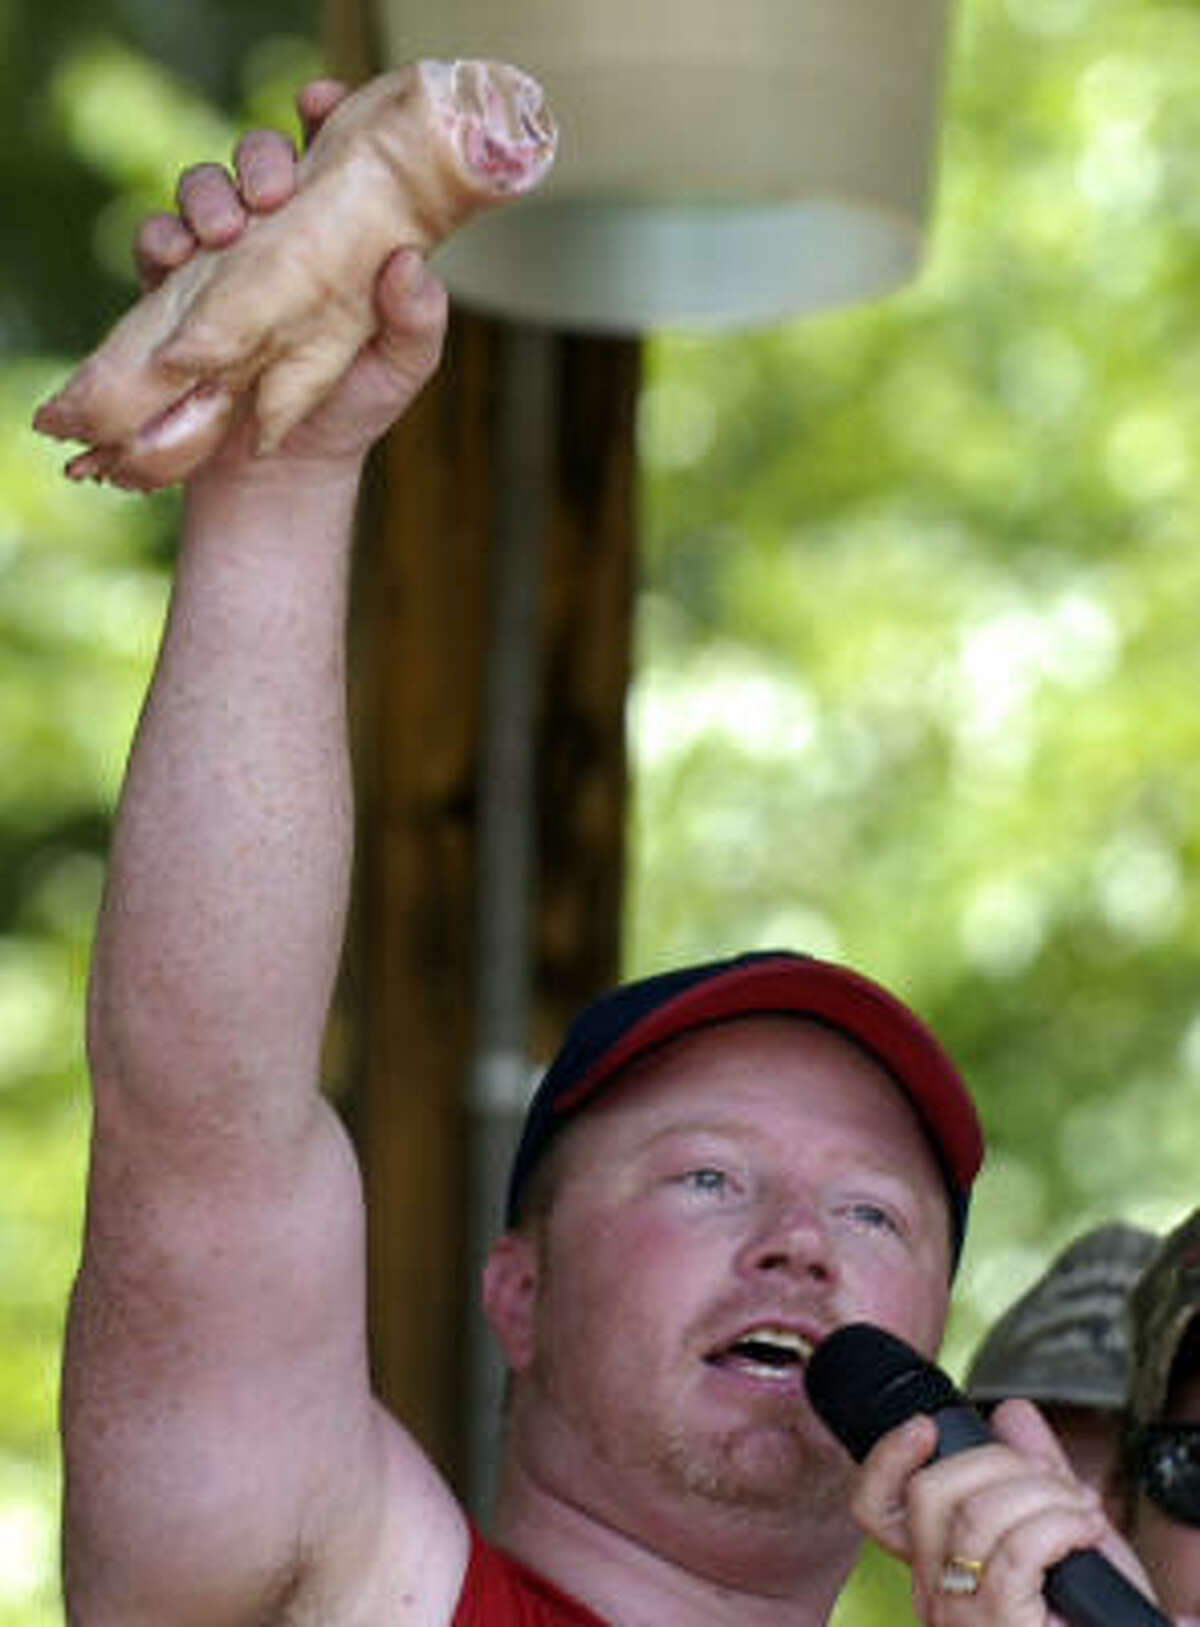 Bobbing for Pigs Feet winner Eric Outler holds a raw pig foot over his head after winning the event.